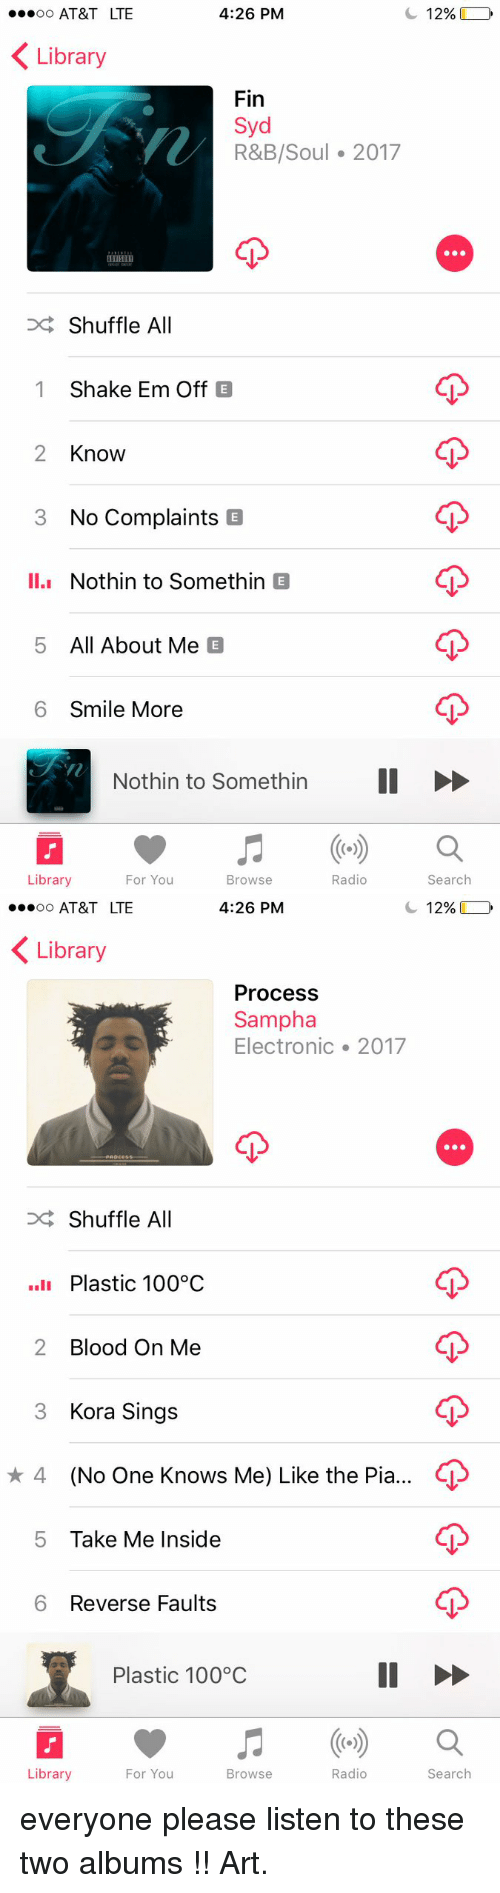 shuffling: 4:26 PM  C 12%  oo AT&T LTE  K Library  Fin  Syd  R&B/Soul 2017  Shuffle All  1 Shake Em Off  2 Know  3 No Complaints  E  II.I  Nothin to Somethin  E  5 All About Me  E  6 Smile More  Nothin to somethin II  Radio  Search  Library  For You  Browse   4:26 PM  C 12%  oo AT&T LTE  K Library  Process  Sampha  Electronic 2017  Shuffle All  Plastic 100°C  2 Blood On Me  3 Kora Sings  4 (No One Knows Me) Like the Pia  5 Take Me Inside  6 Reverse Faults  Plastic 100 C  Radio  Search  Library  For You  Browse everyone please listen to these two albums !! Art.